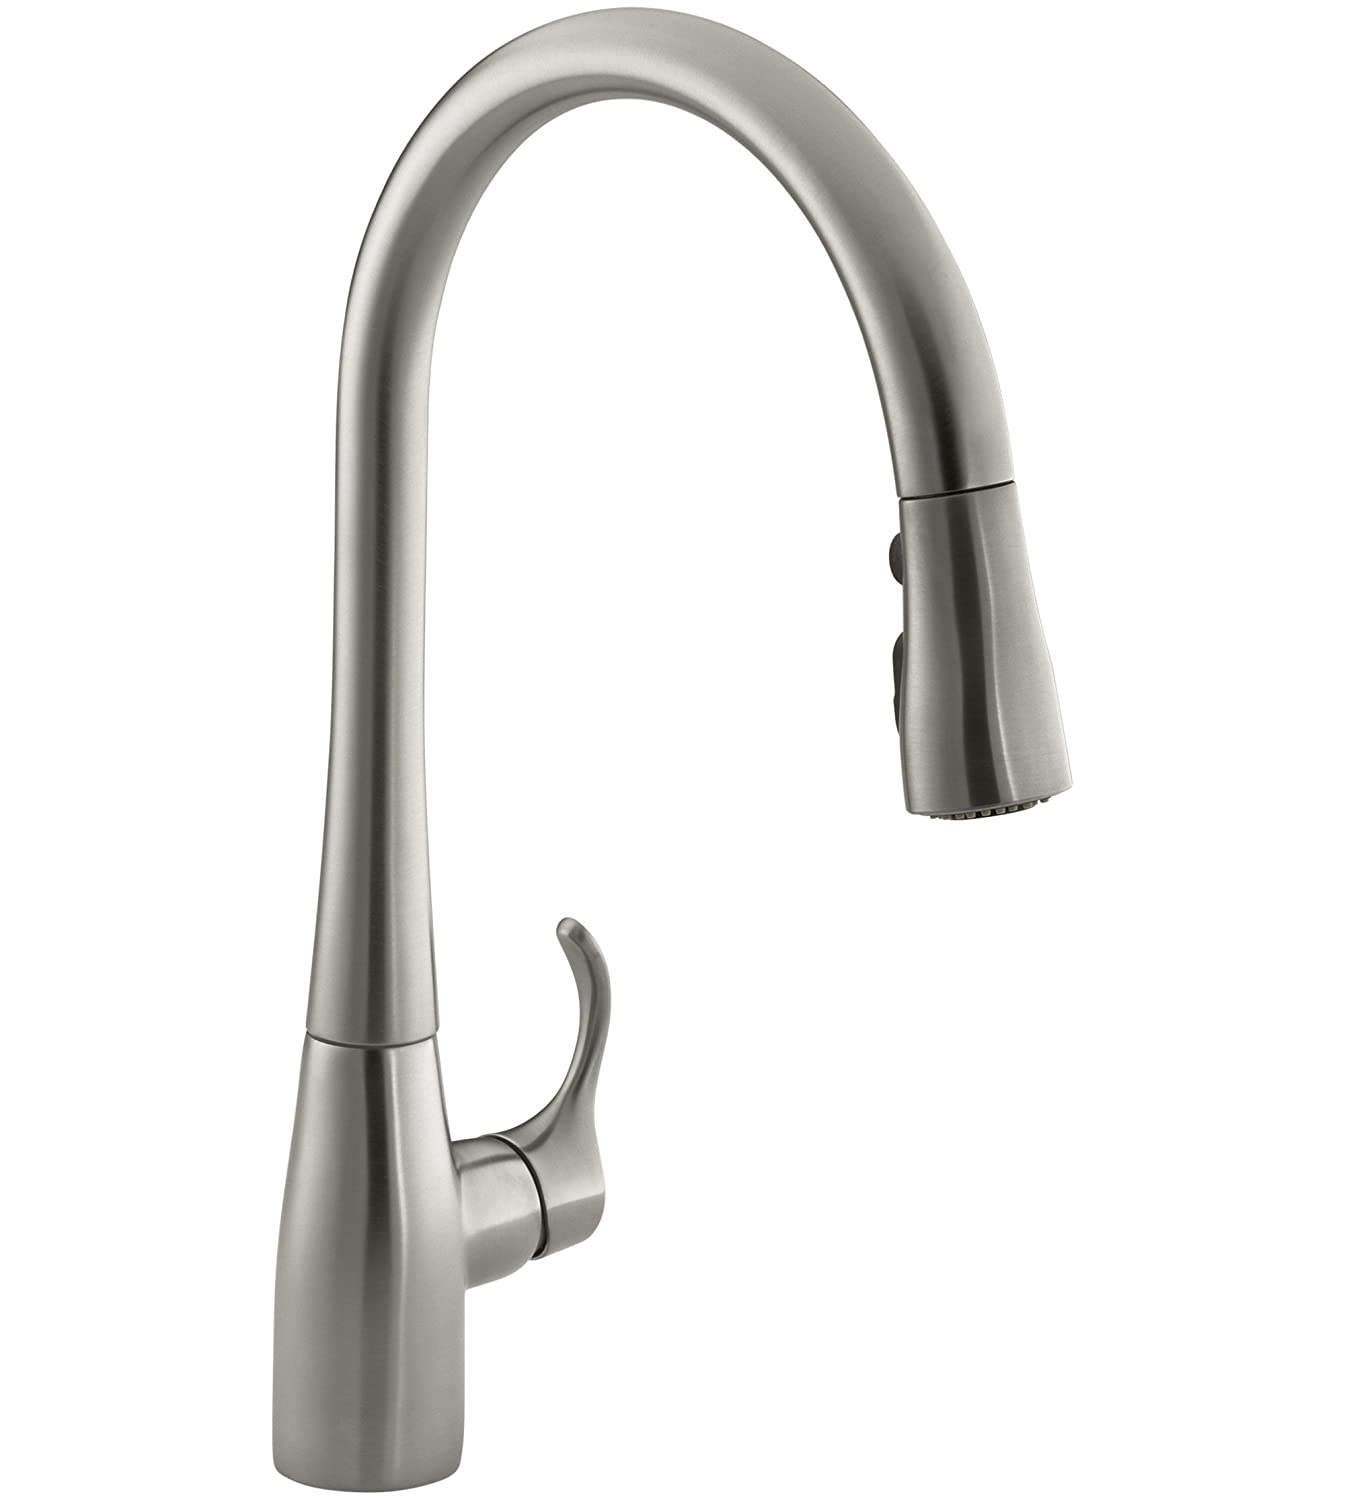 kitchen vs simplice sink stainless down with faucet com dp touch kohler spray k faucets pull hole vibrant steel on amazon single